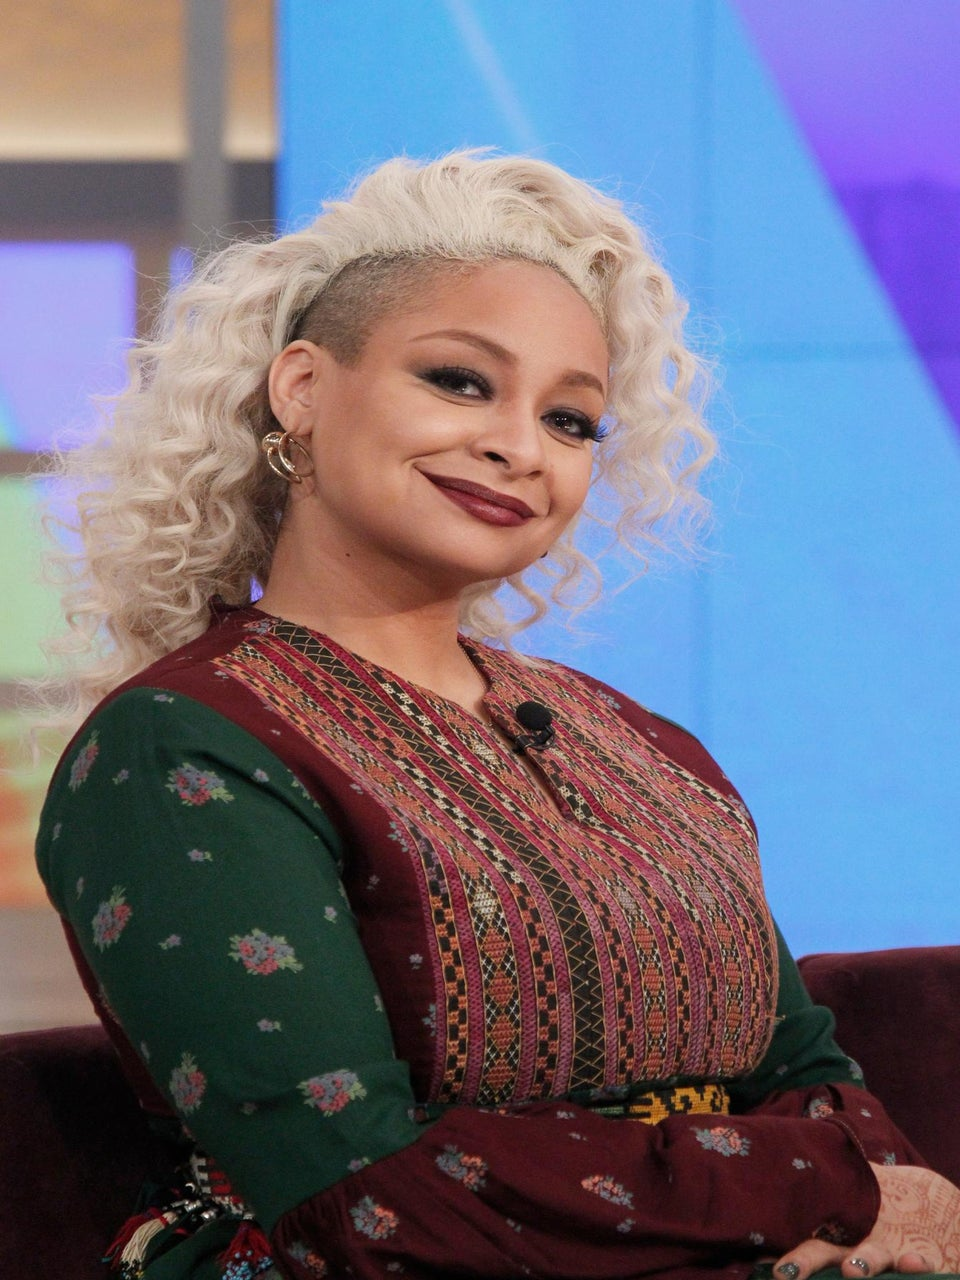 Raven-Symoné Releases New Music for First Time in 8 Years